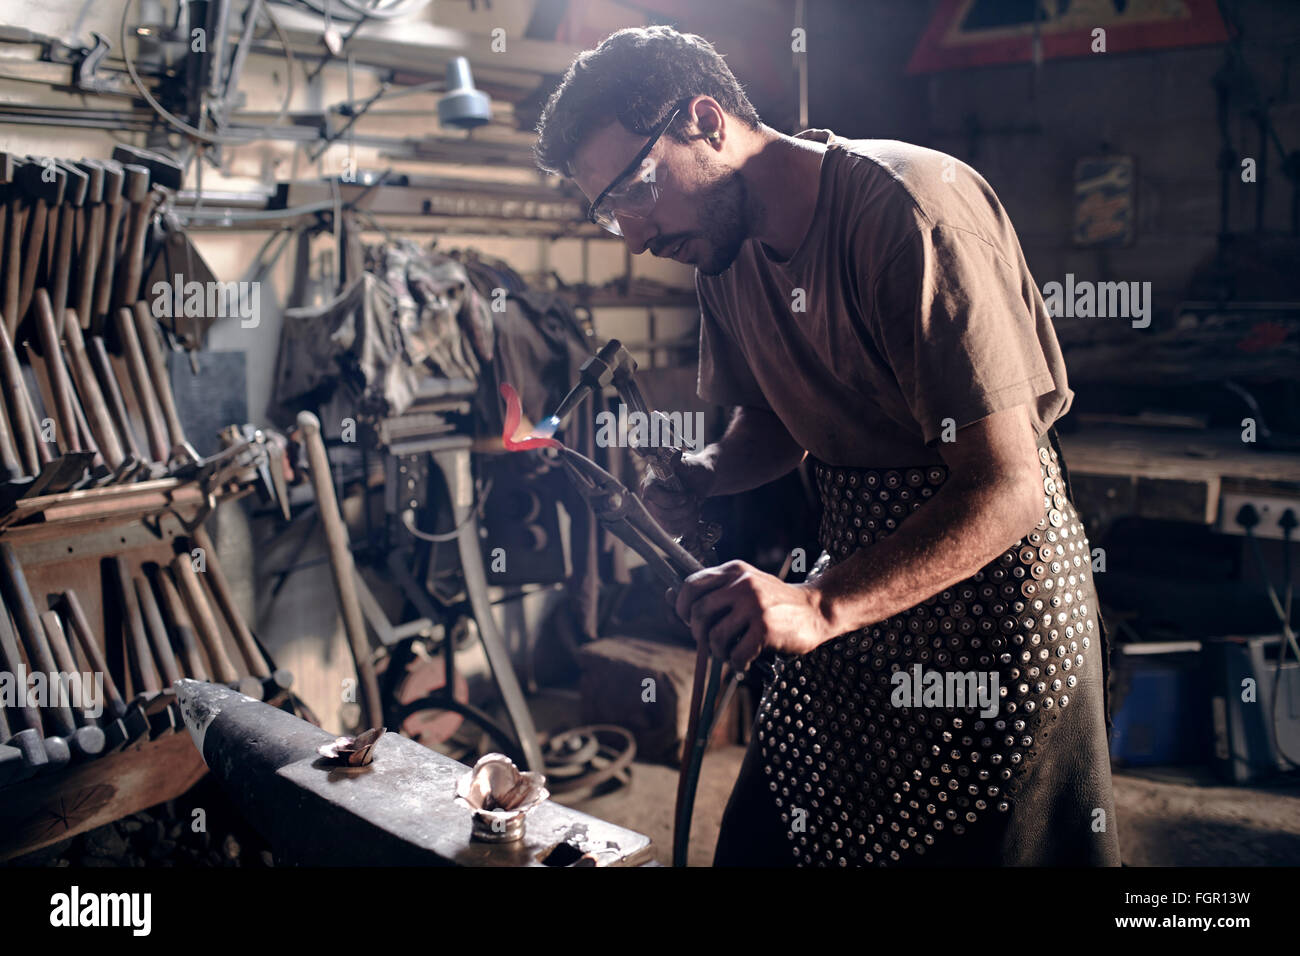 Blacksmith heating metal with blowtorch in forge - Stock Image